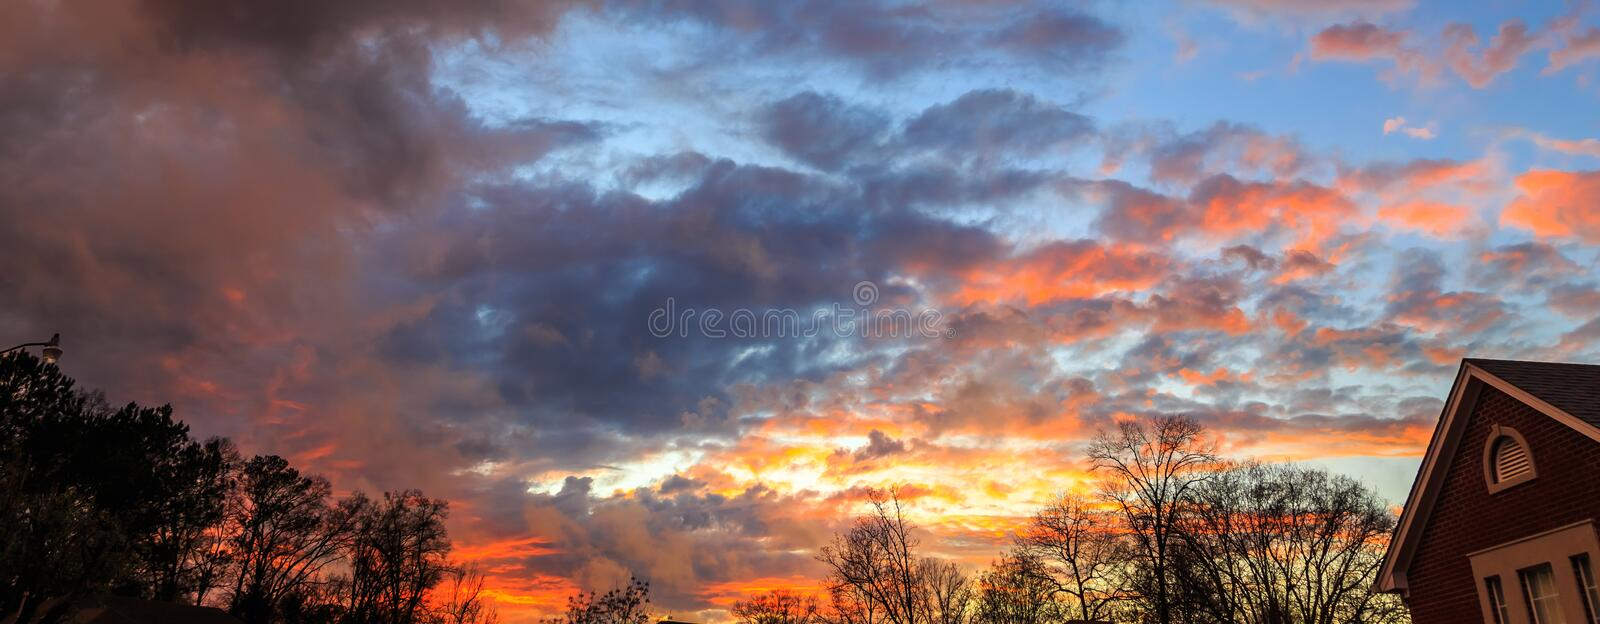 Post Tornado Watch Sunset in Montgomery, Alabama. Gorgeous orange, yellow, and blue sunset after a tornado watch in Montgomery, Alabama stock photo